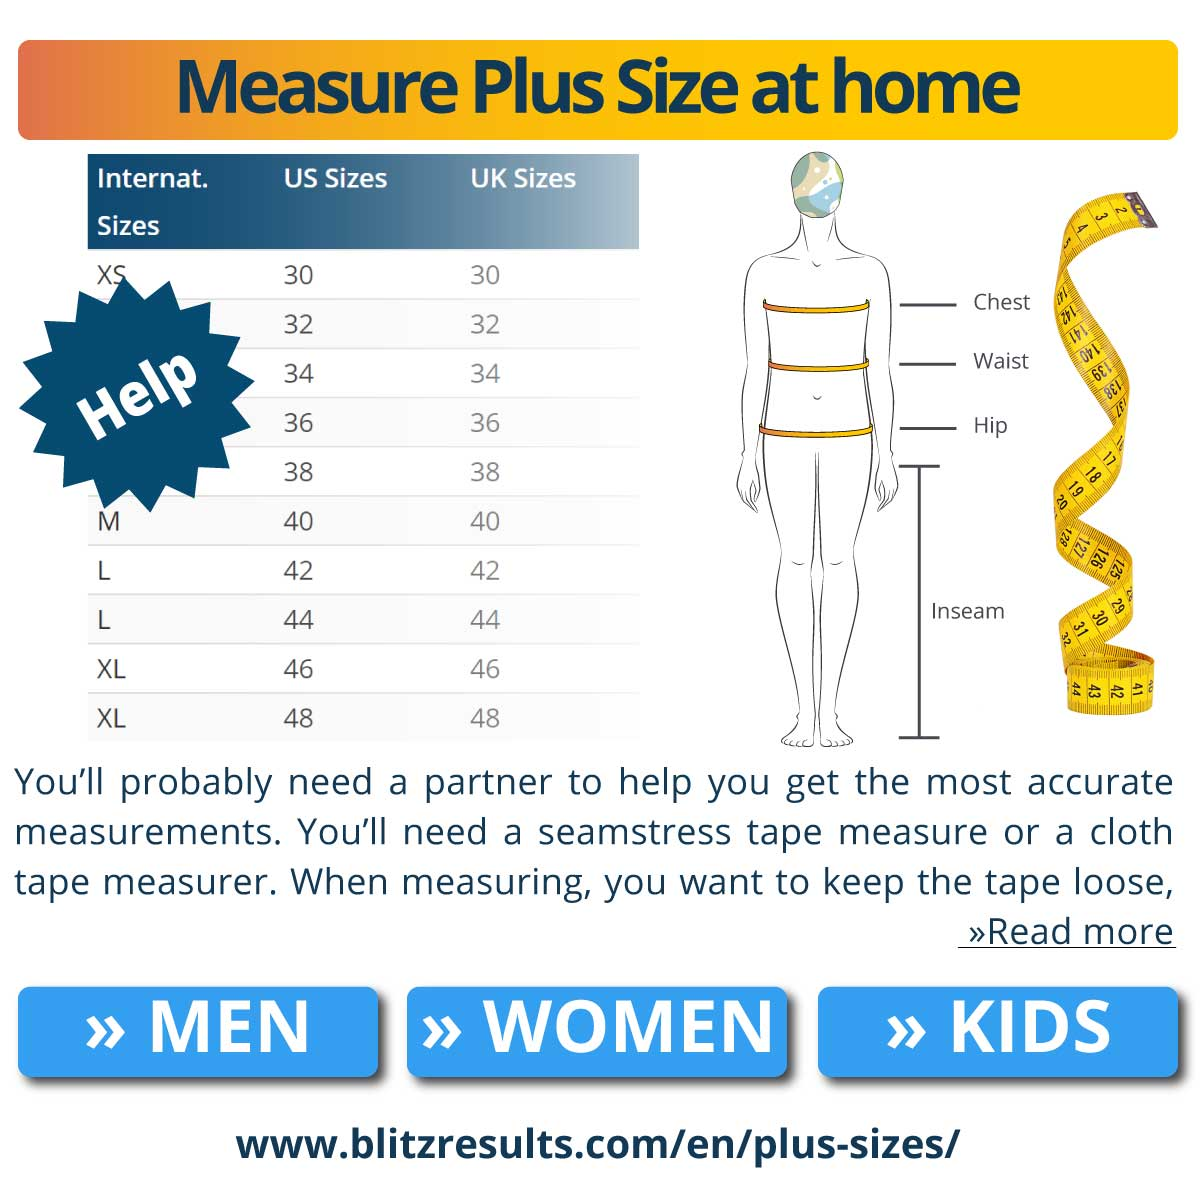 Measure Plus Size at home